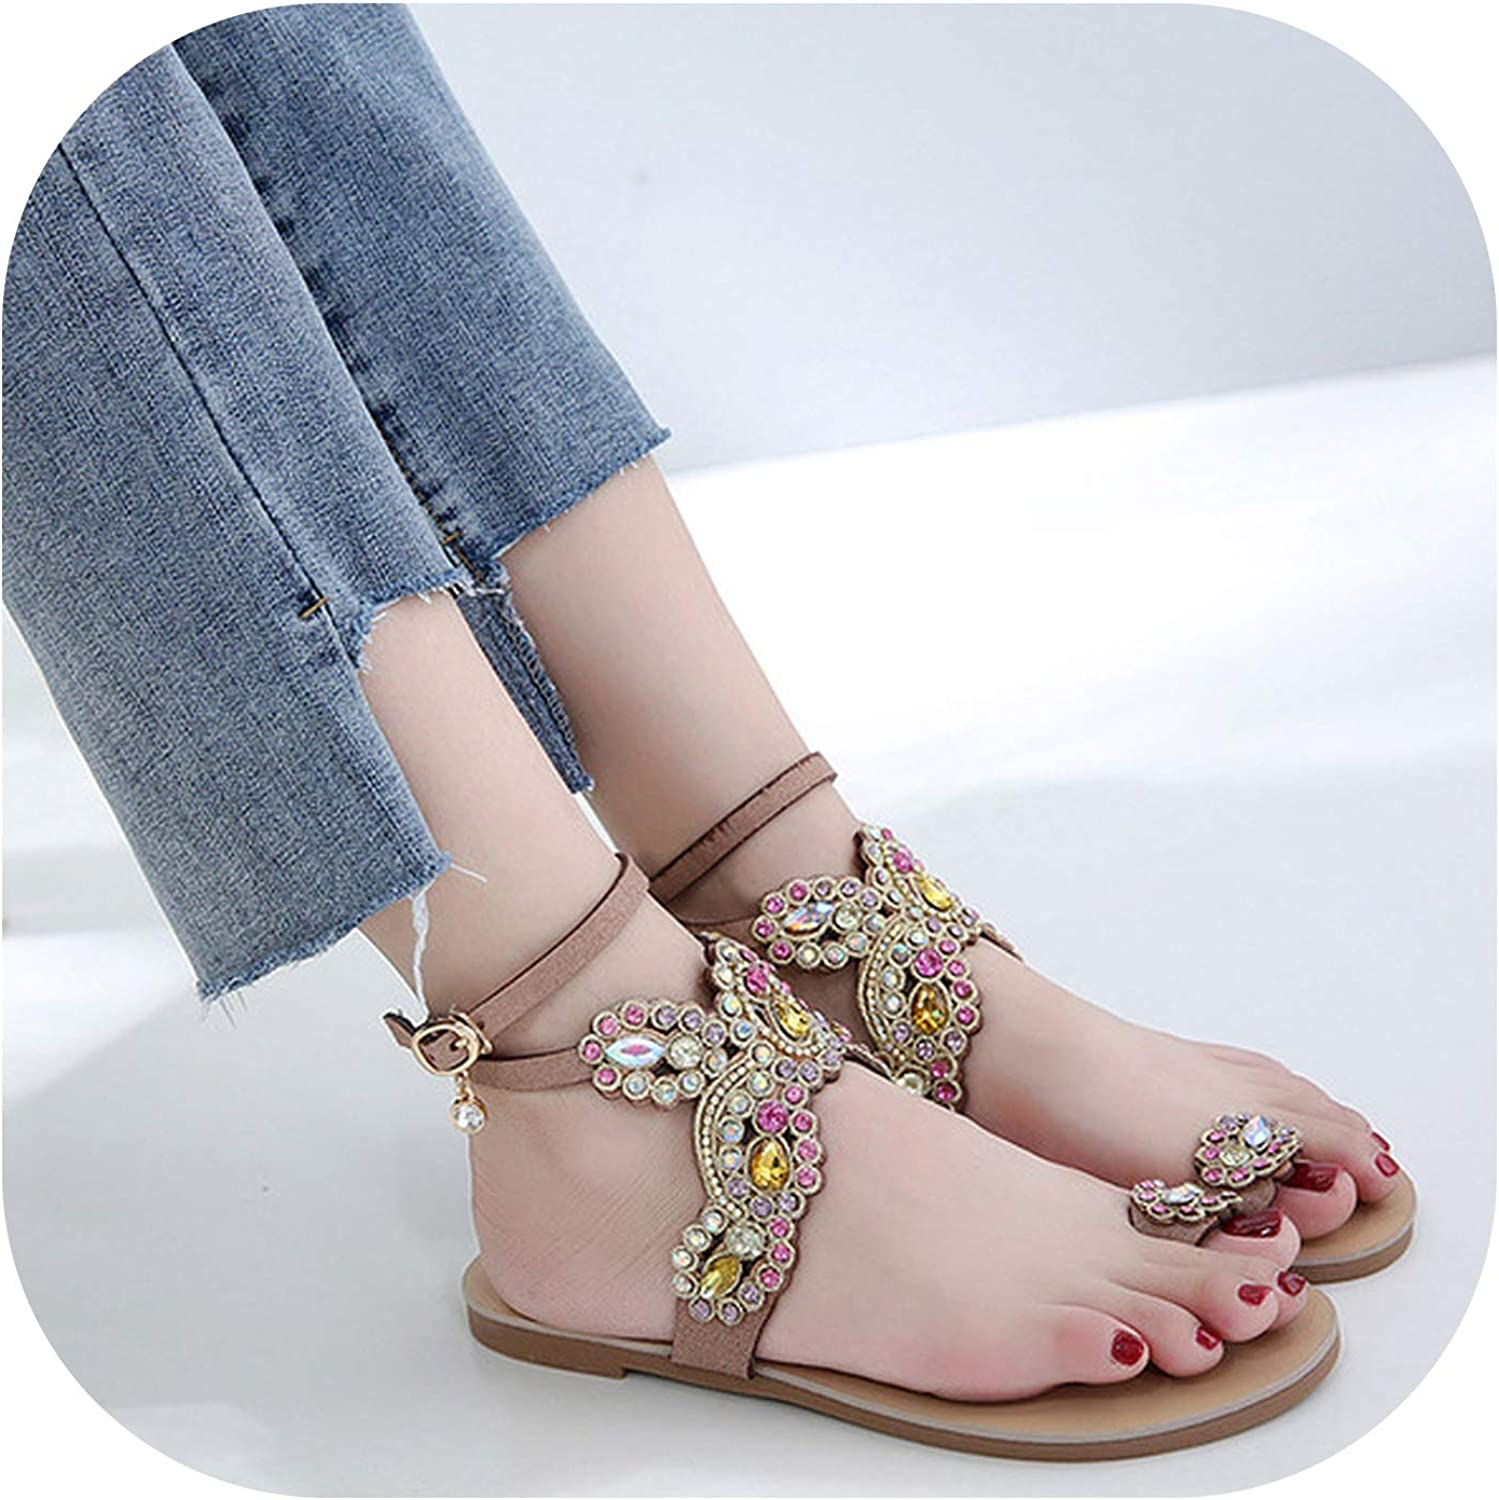 Alerghrg Buckle Bohemian Roman Style Seaside Beach Sandals Rhinestone Flat Sandals Black Beige F074